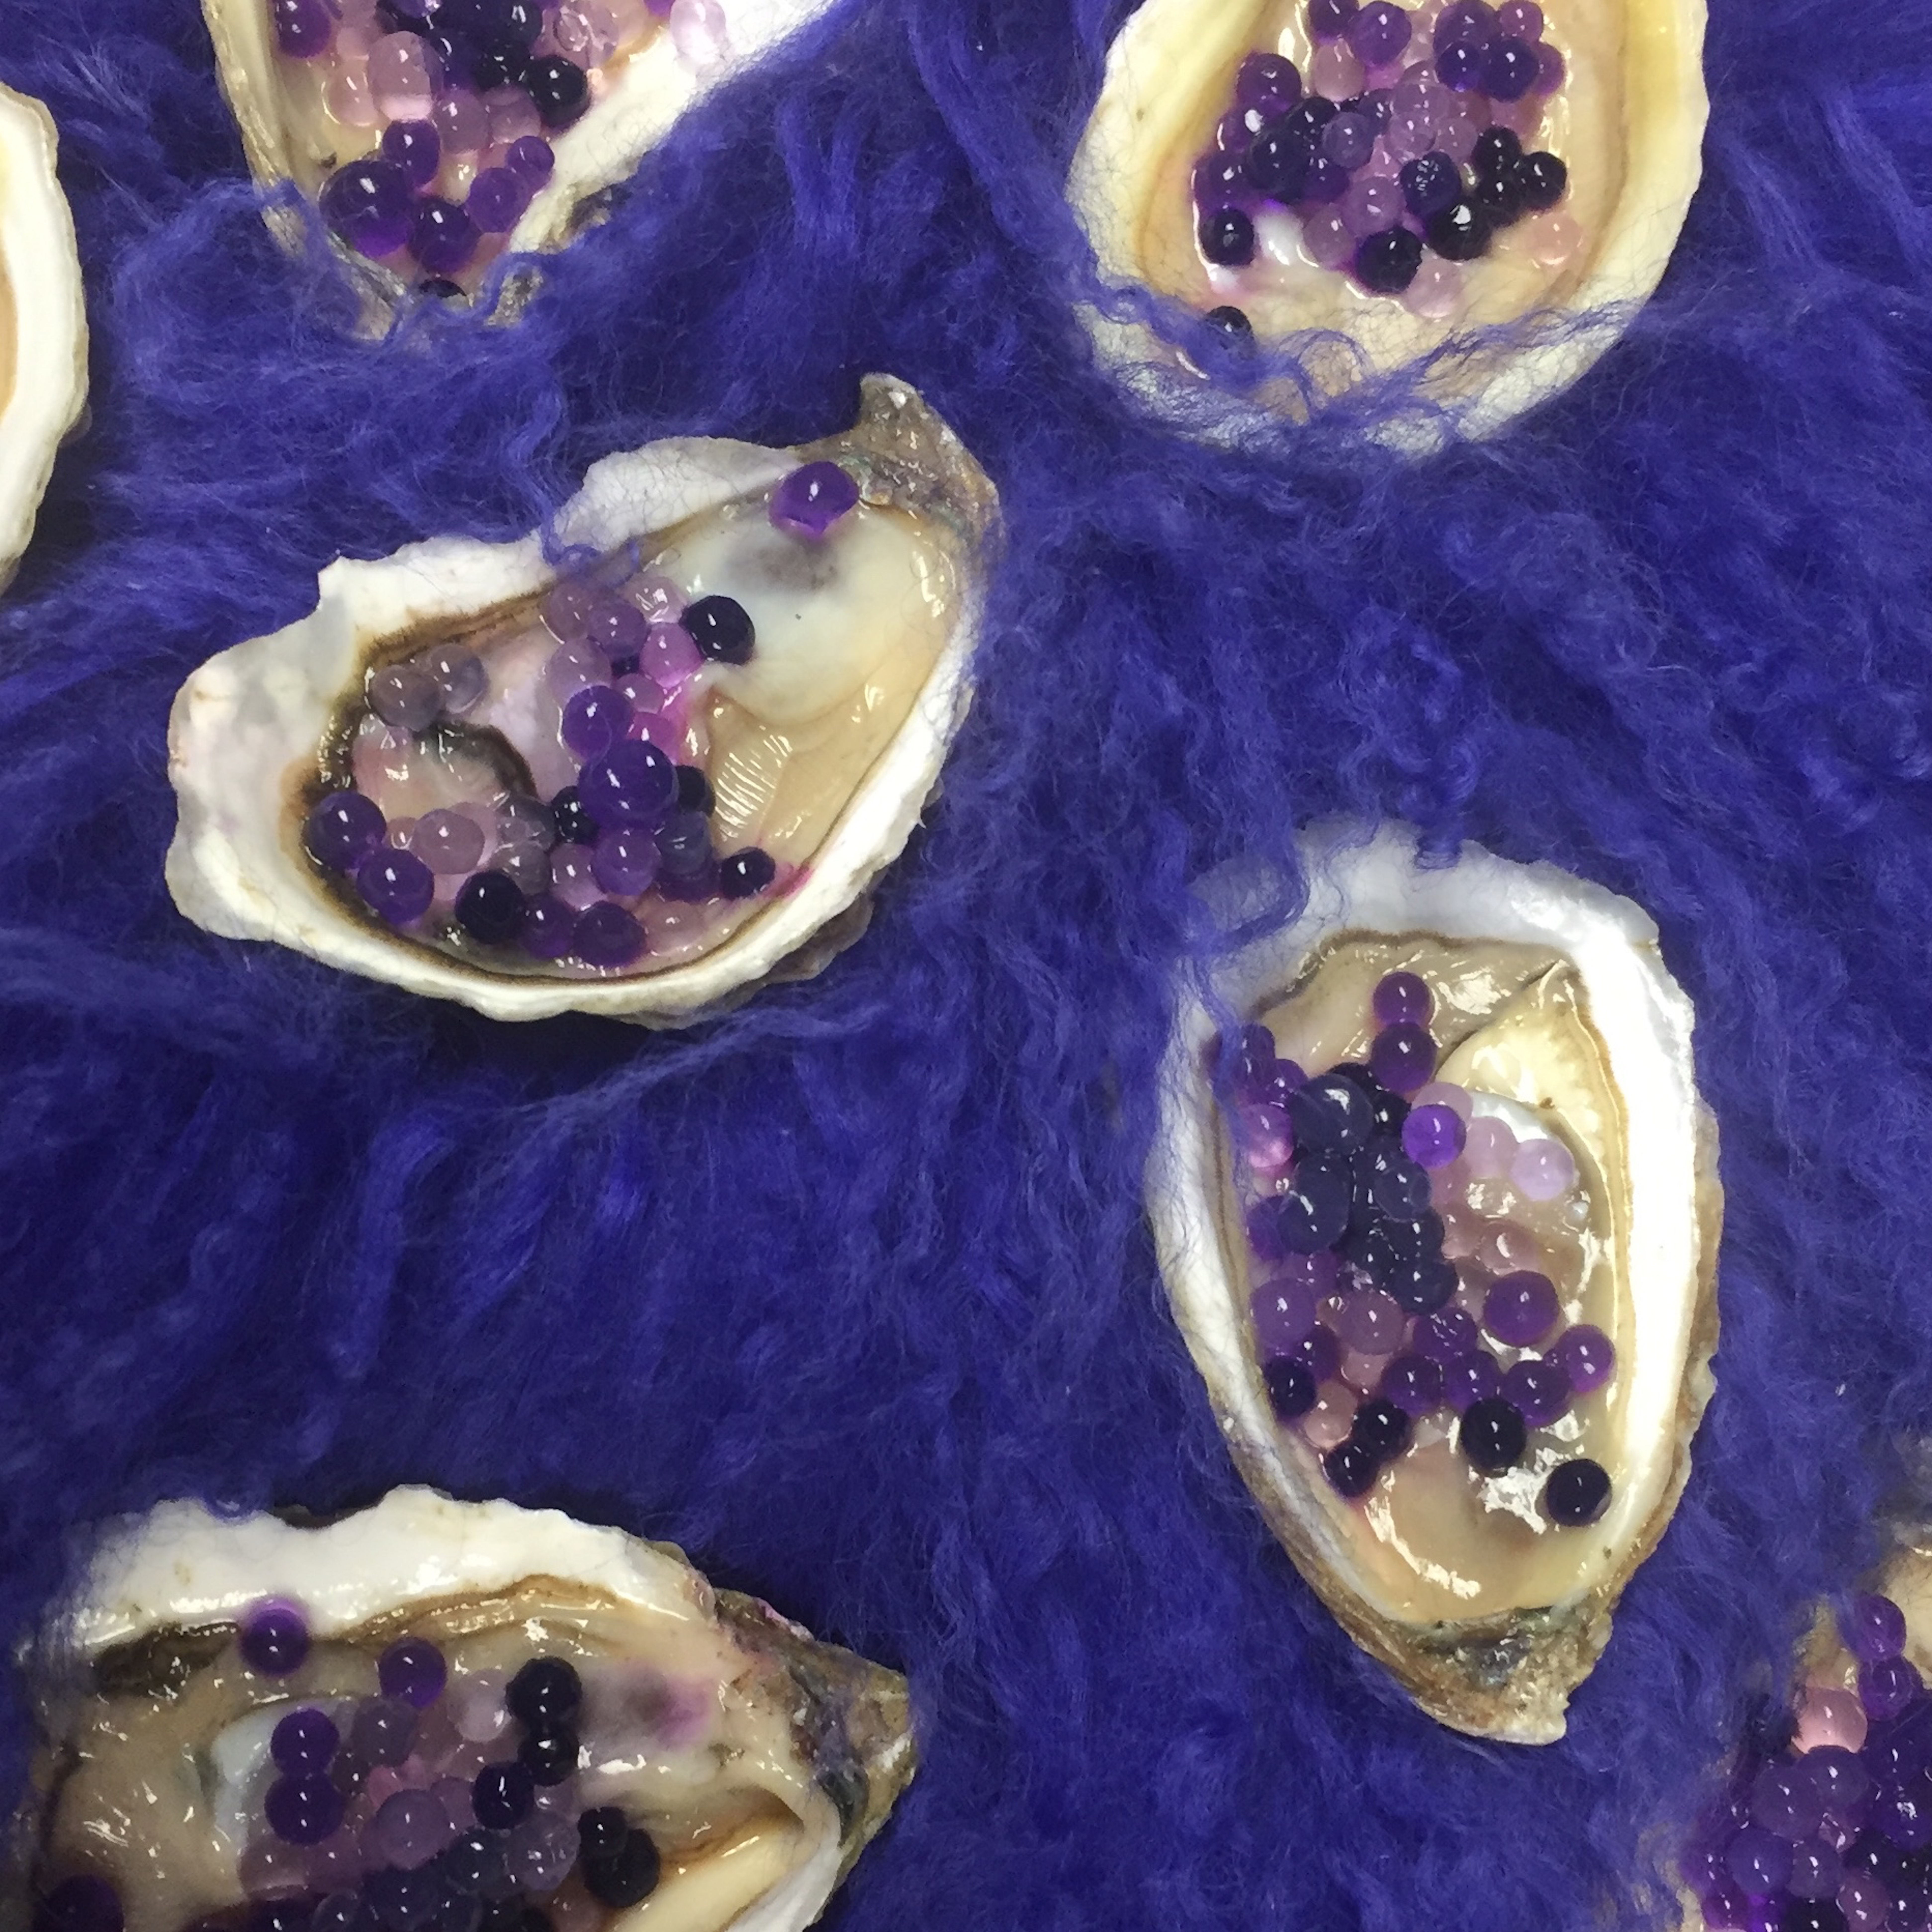 Oysters with agar pearls for KARA photoshoot, November 2018